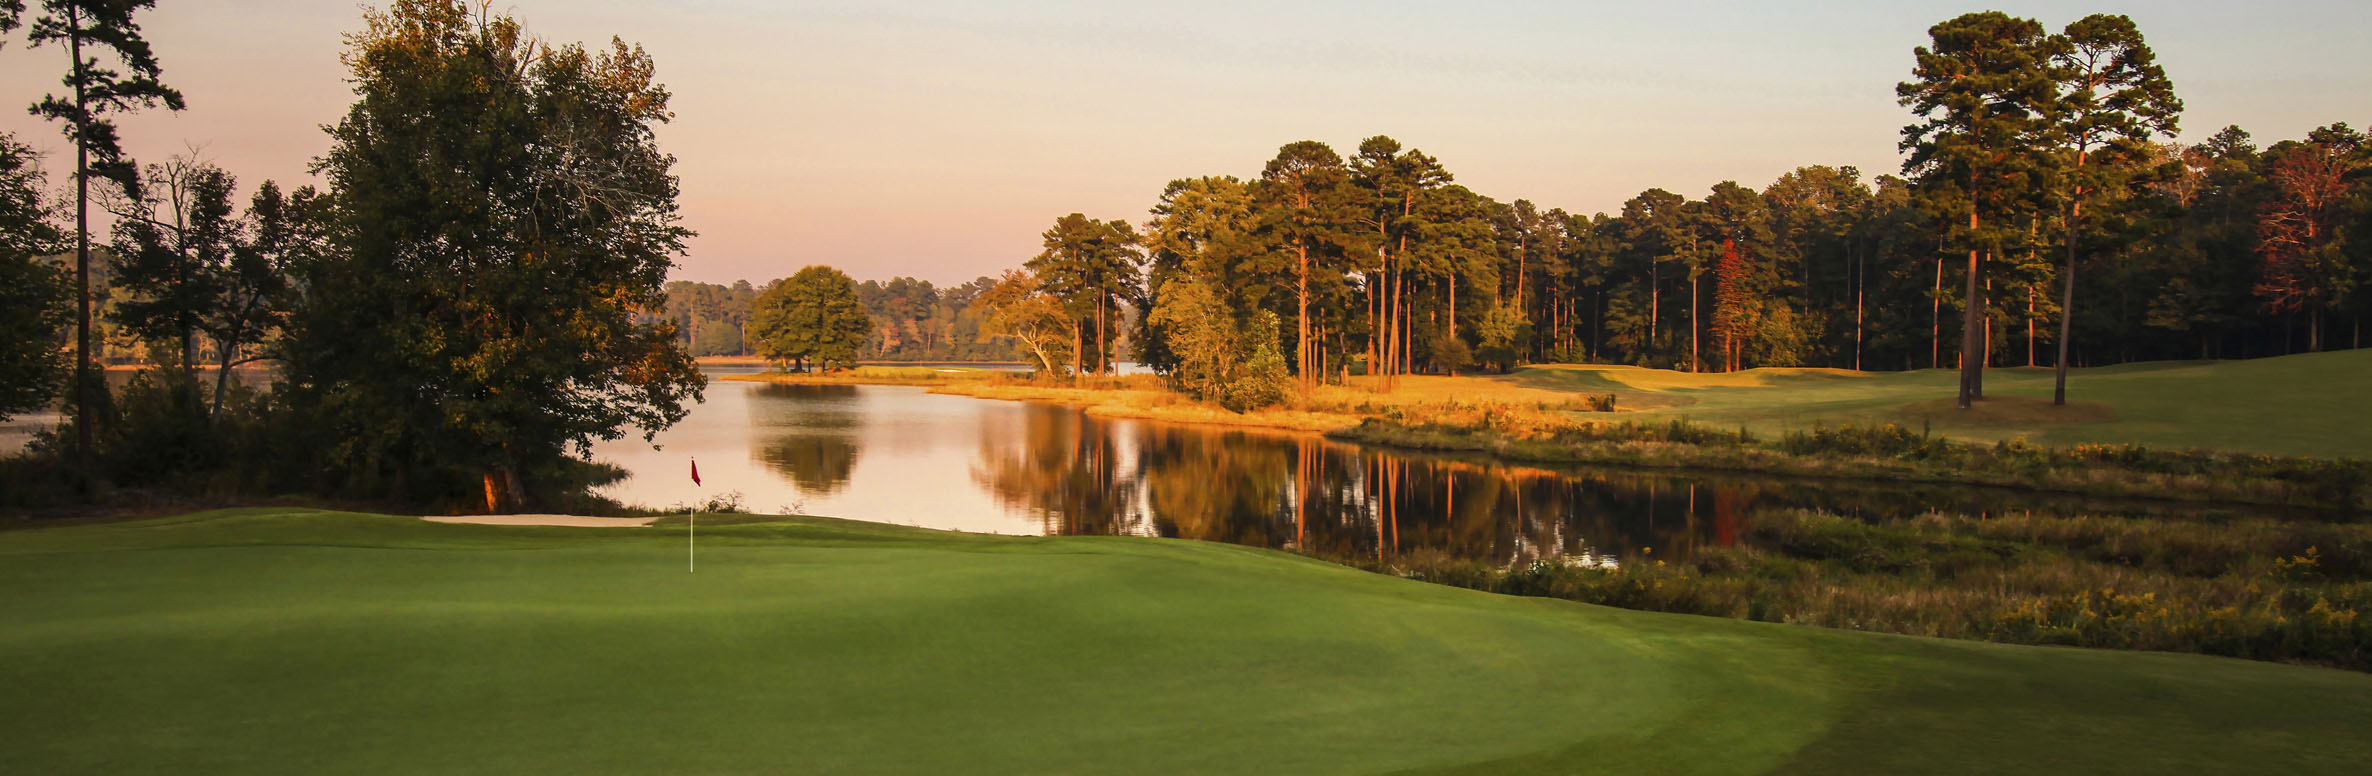 Golf Course Image - Robert Trent Jones Golf Trail at Grand National Lake Course No. 16